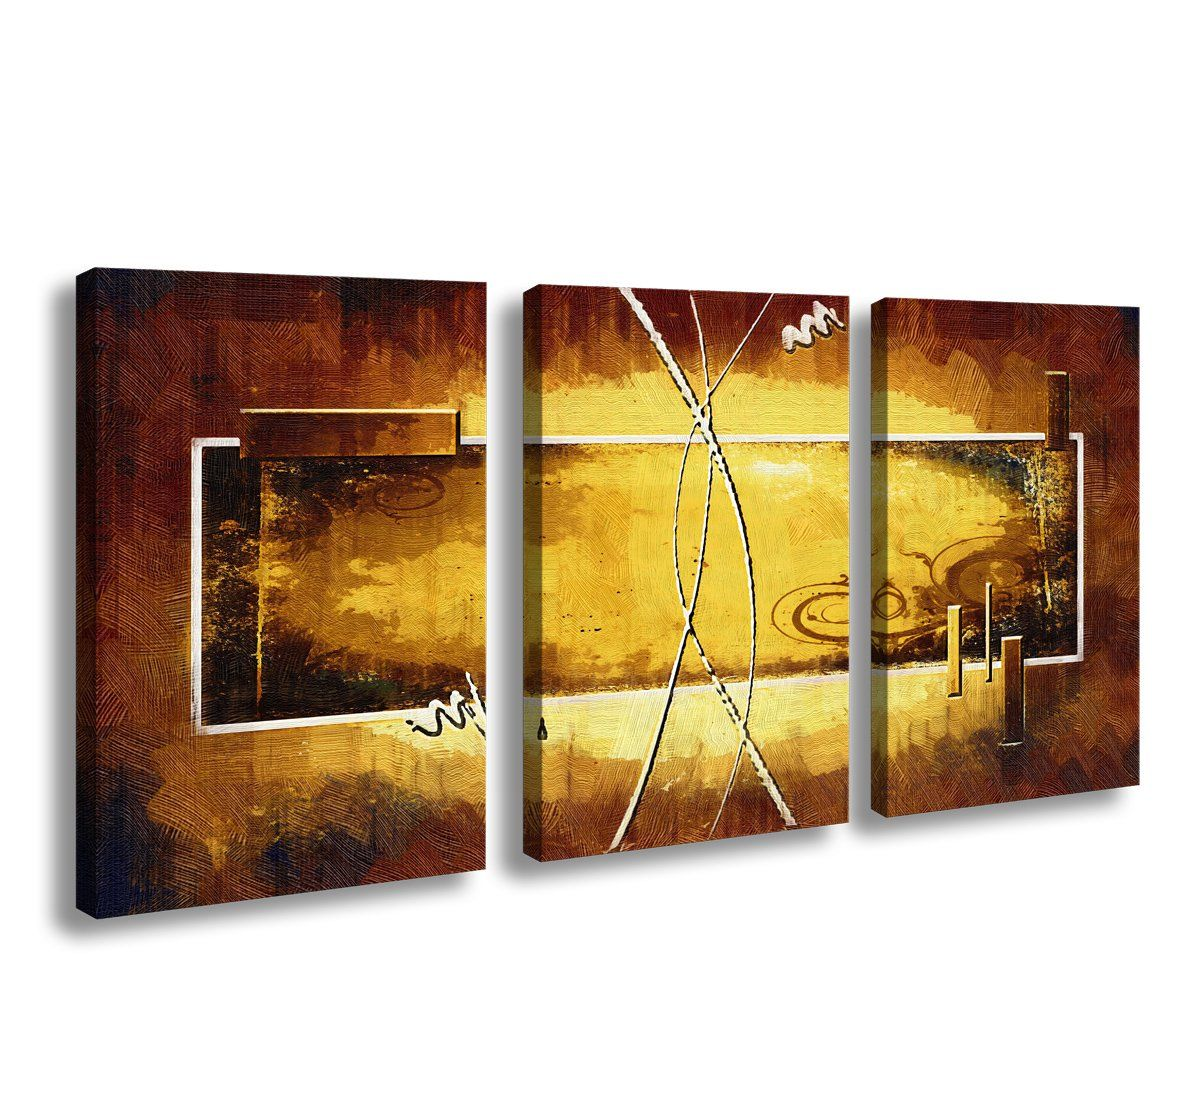 Cao Gen Decor Art-A01146 3 panels Framed Wall Art Canvas Prints ...